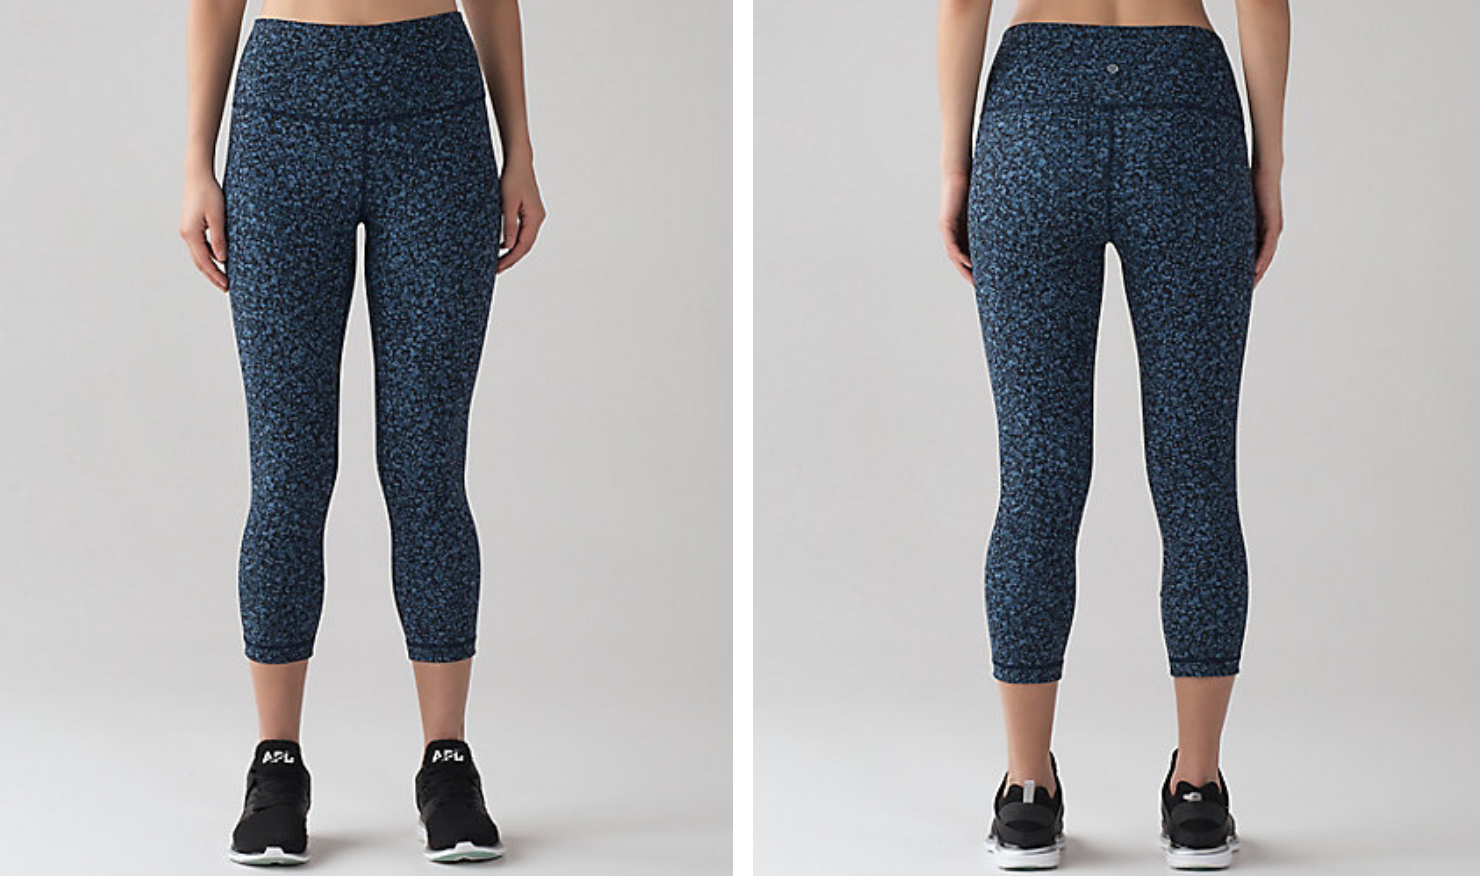 https://api.shopstyle.com/action/apiVisitRetailer?url=https%3A%2F%2Fshop.lululemon.com%2Fp%2Fwomen-crops%2FWunder-Under-Crop-Hi-Rise-Full-On-Lux%2F_%2Fprod2080039%3Frcnt%3D25%26N%3D1z13ziiZ7z5%26cnt%3D38%26color%3DLW6AI3S_029063&site=www.shopstyle.ca&pid=uid6784-25288972-7